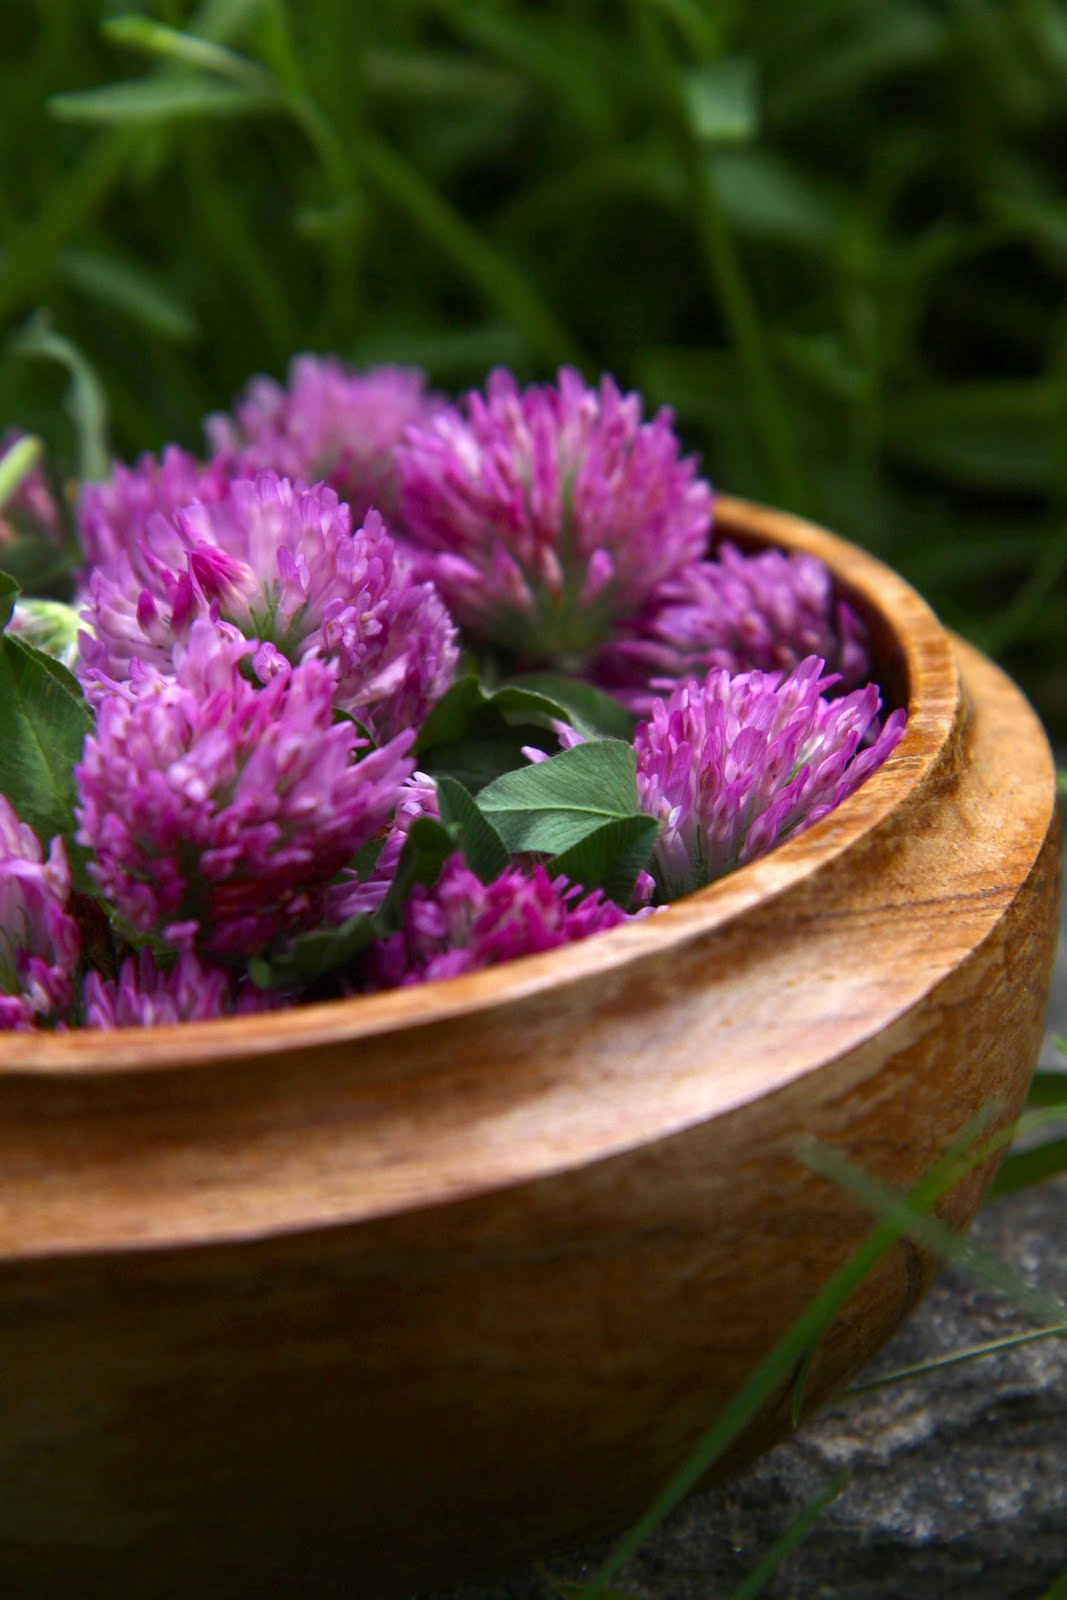 Wild About Red Clover